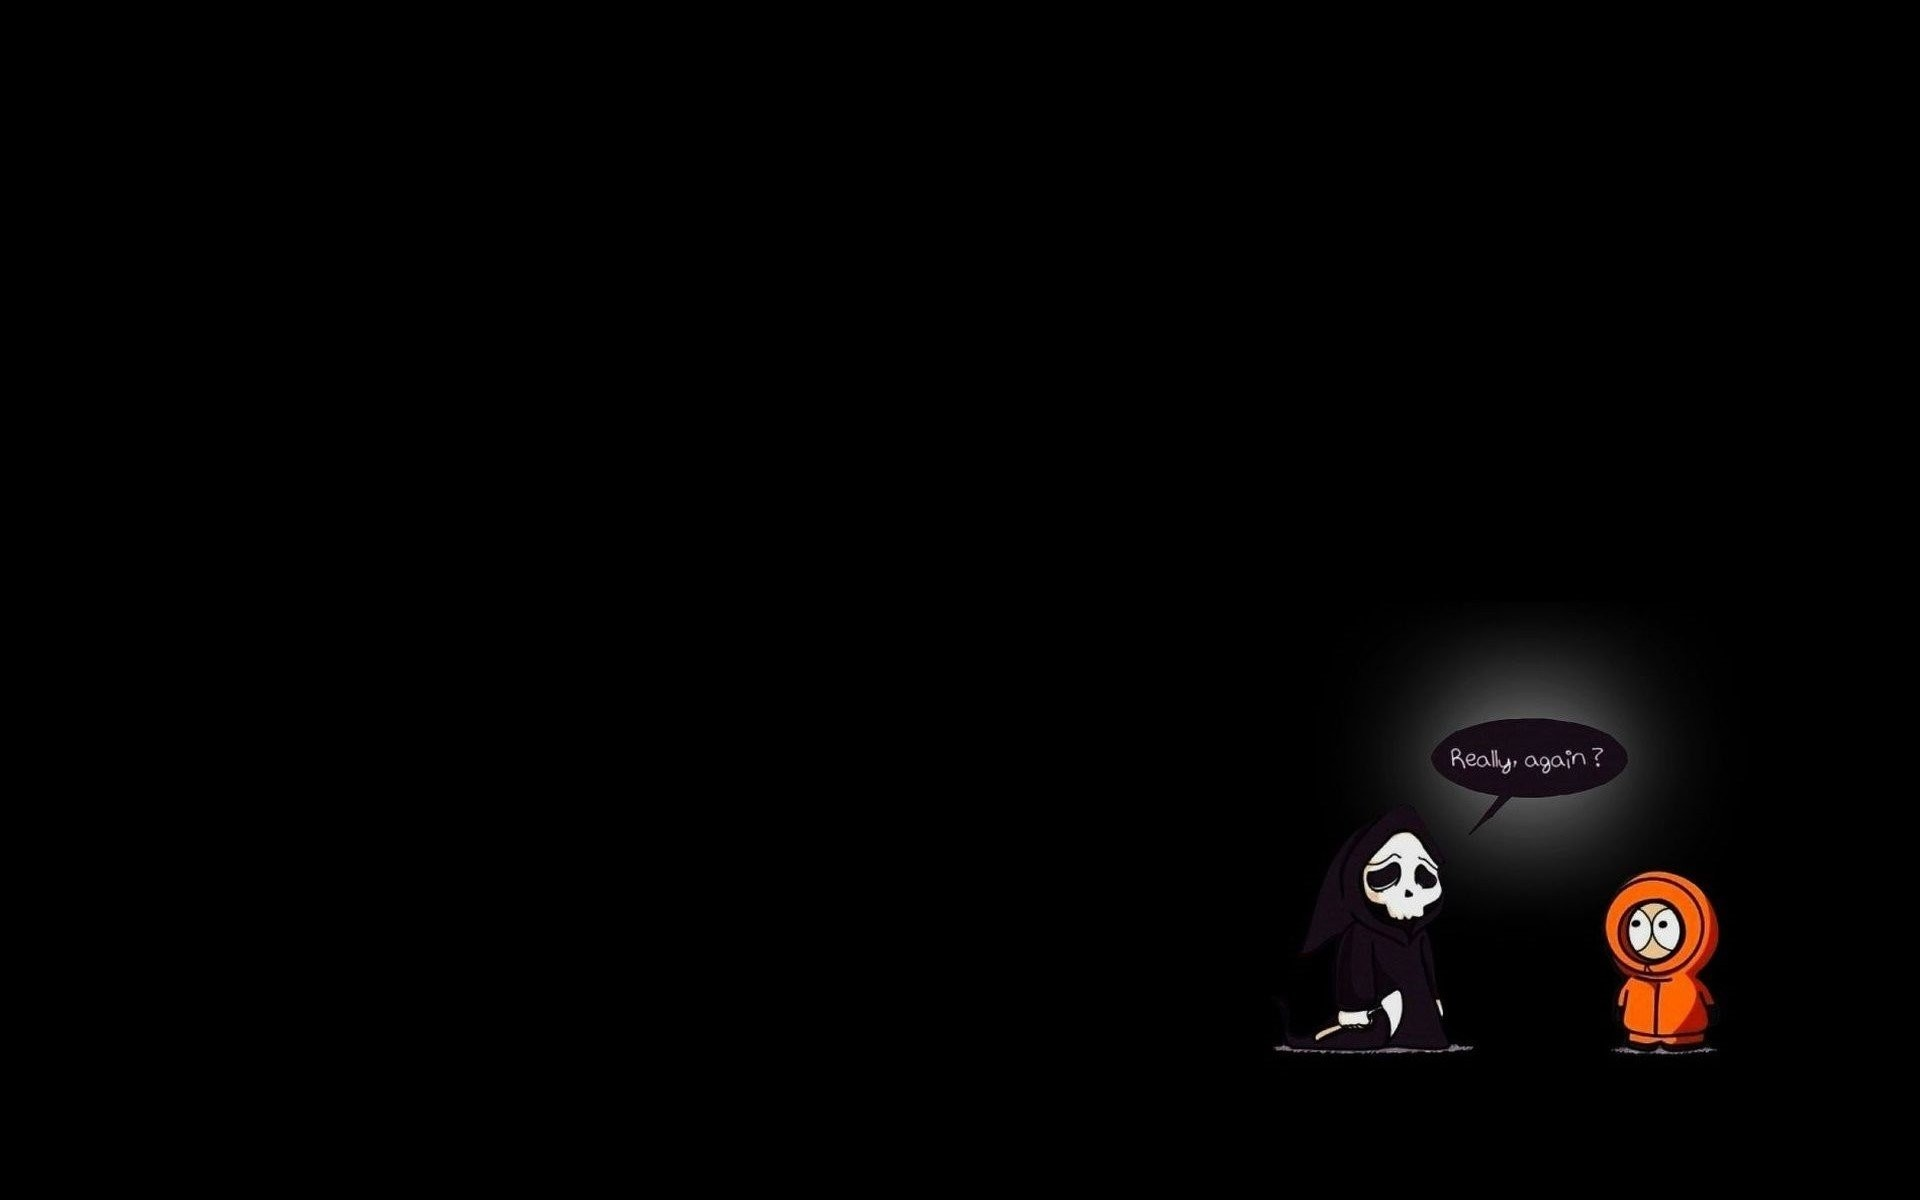 South Park Kenny Wallpaper (73+ Images)